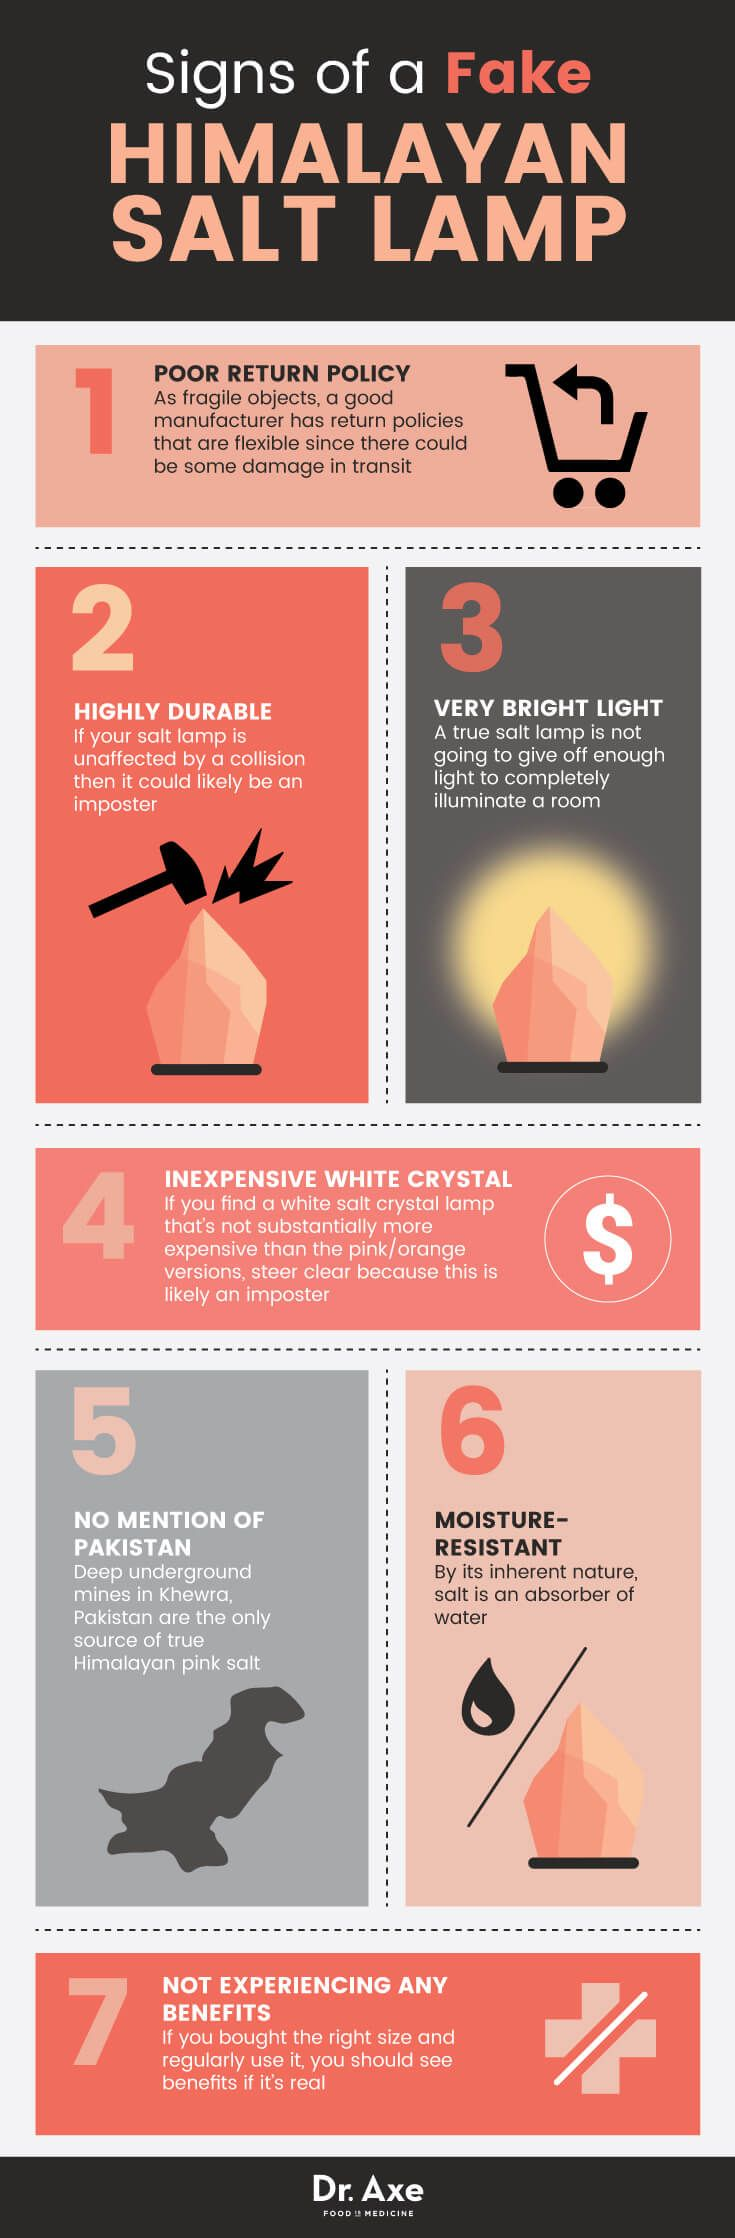 Salt Rock Lamp Benefits Enchanting 64 Best Has Anyone Tried A Himalayan Salt Lamp Imagesvanessa 2018